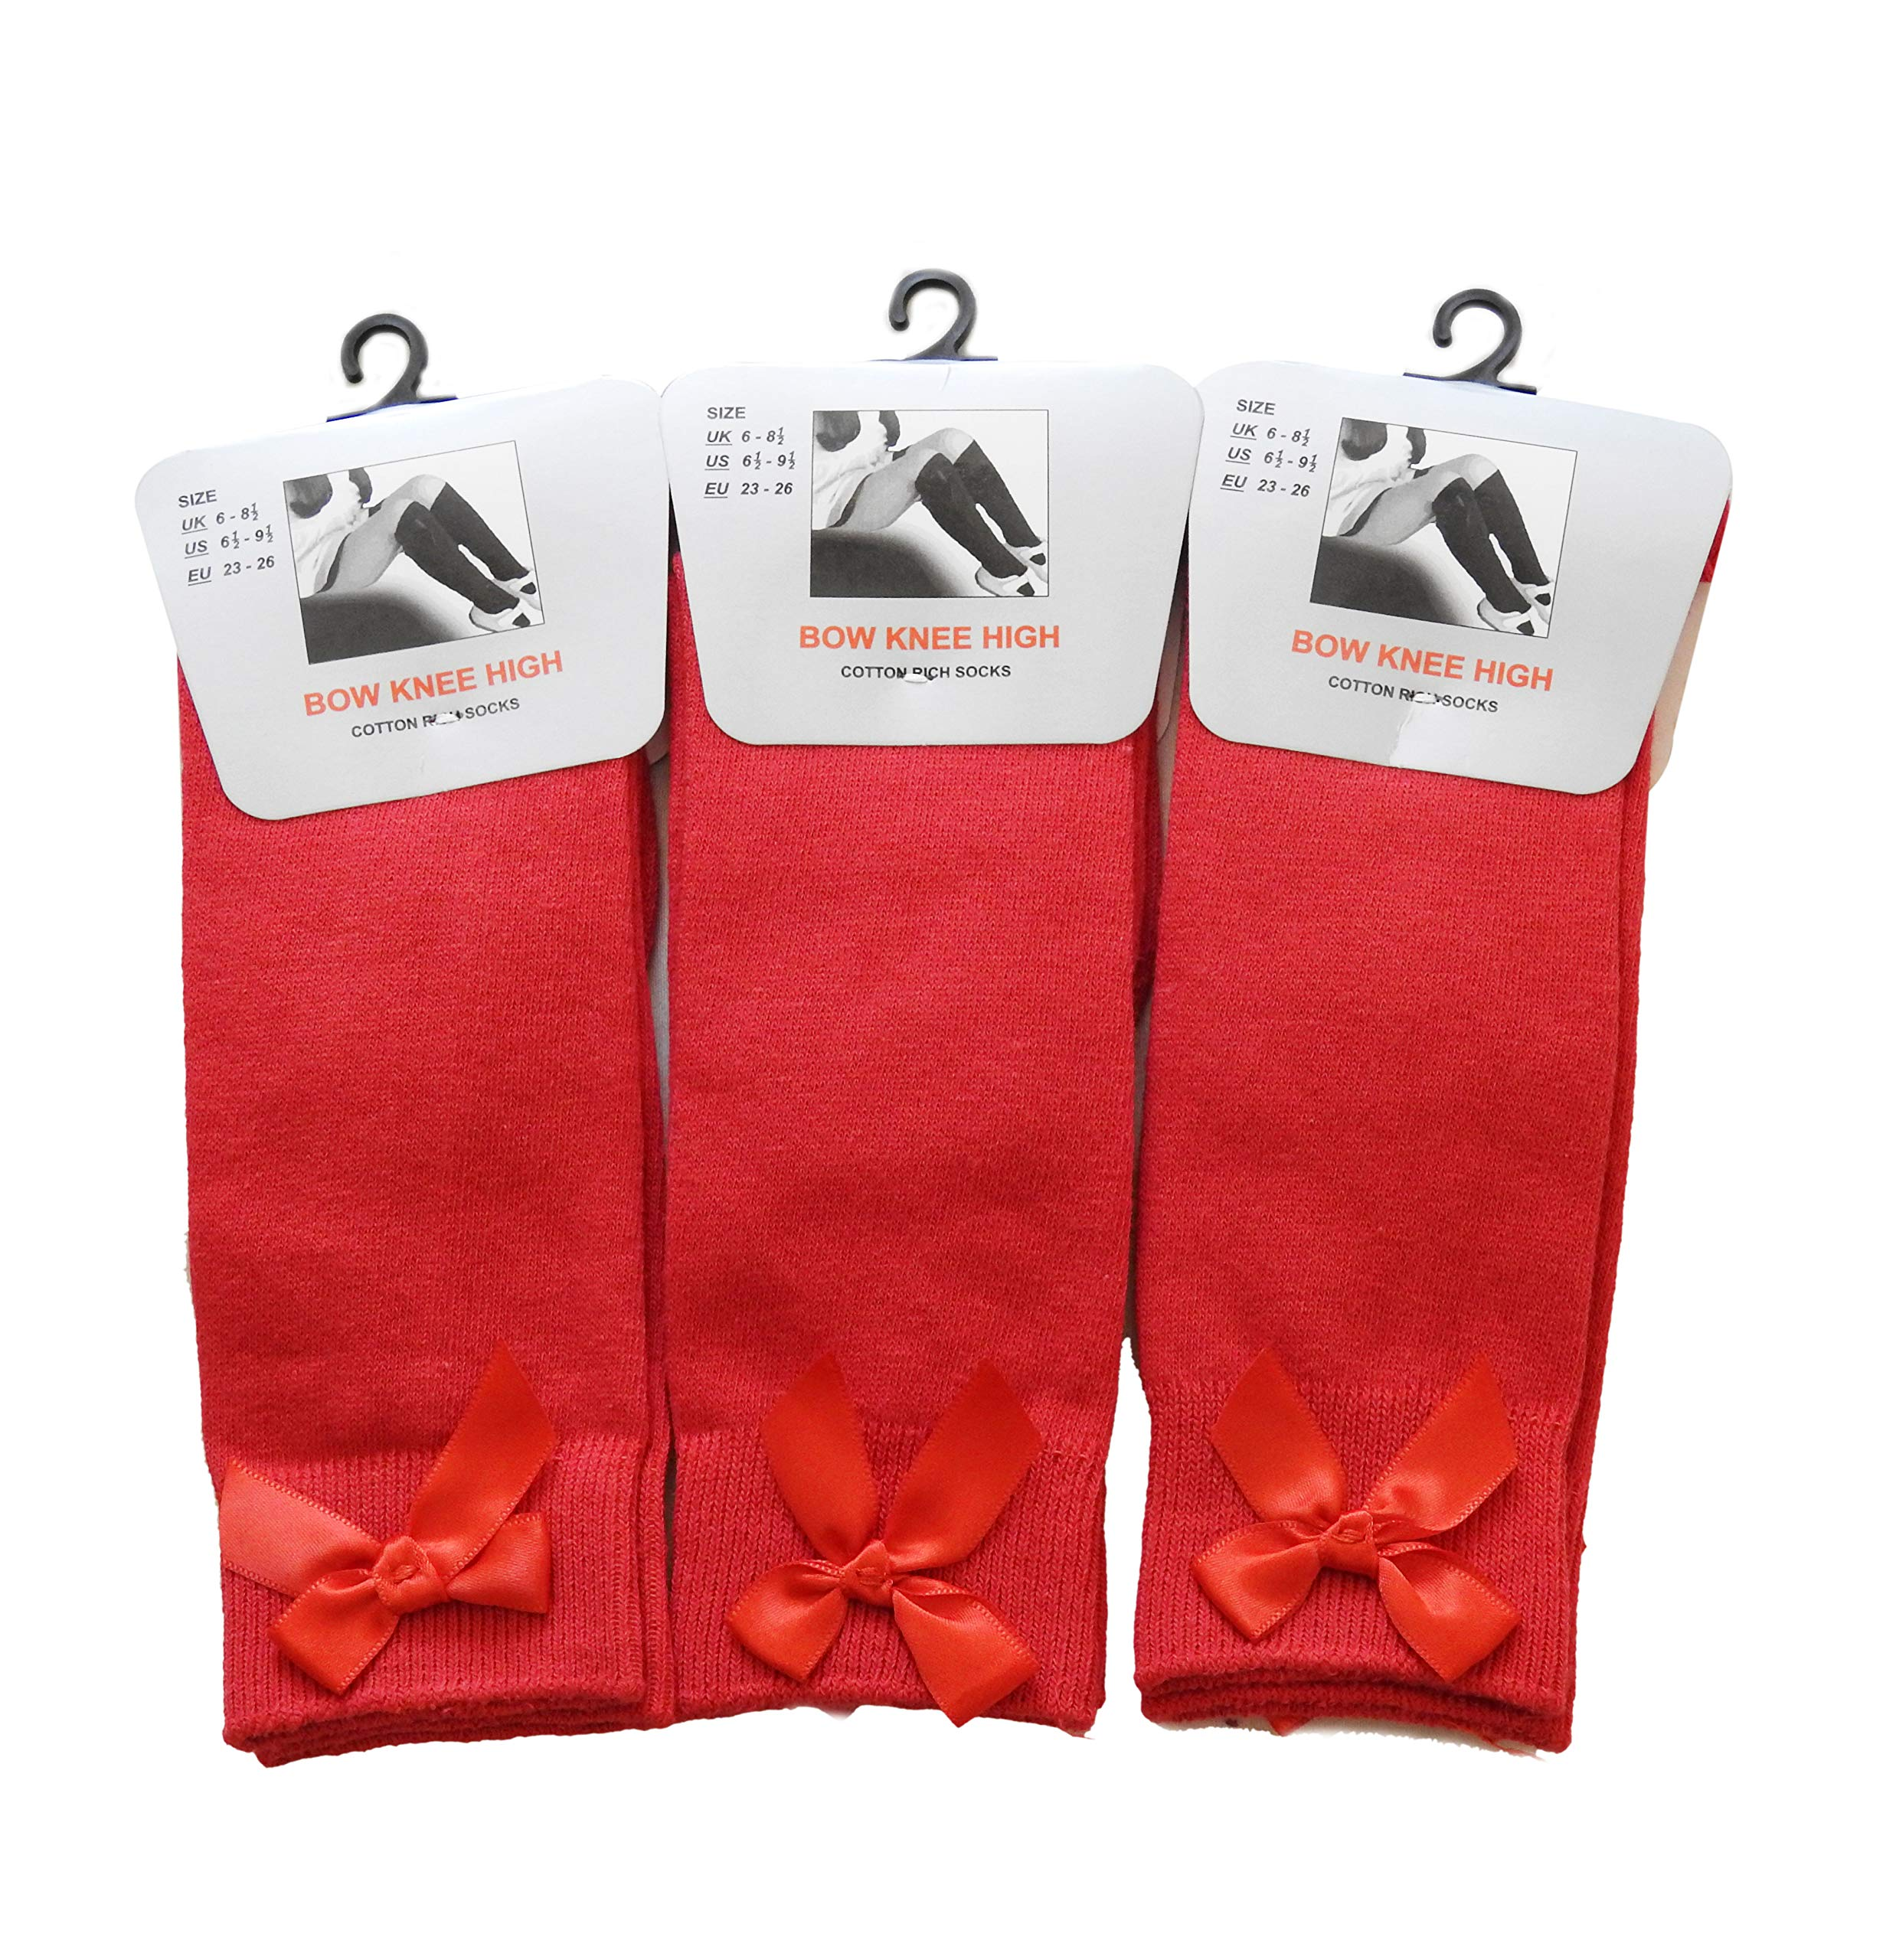 Socks Bow Knee High 3 pairs School Girls /& Kids Plain Long Length Cotton Stretch With all size /& colour Set of 3 pairs